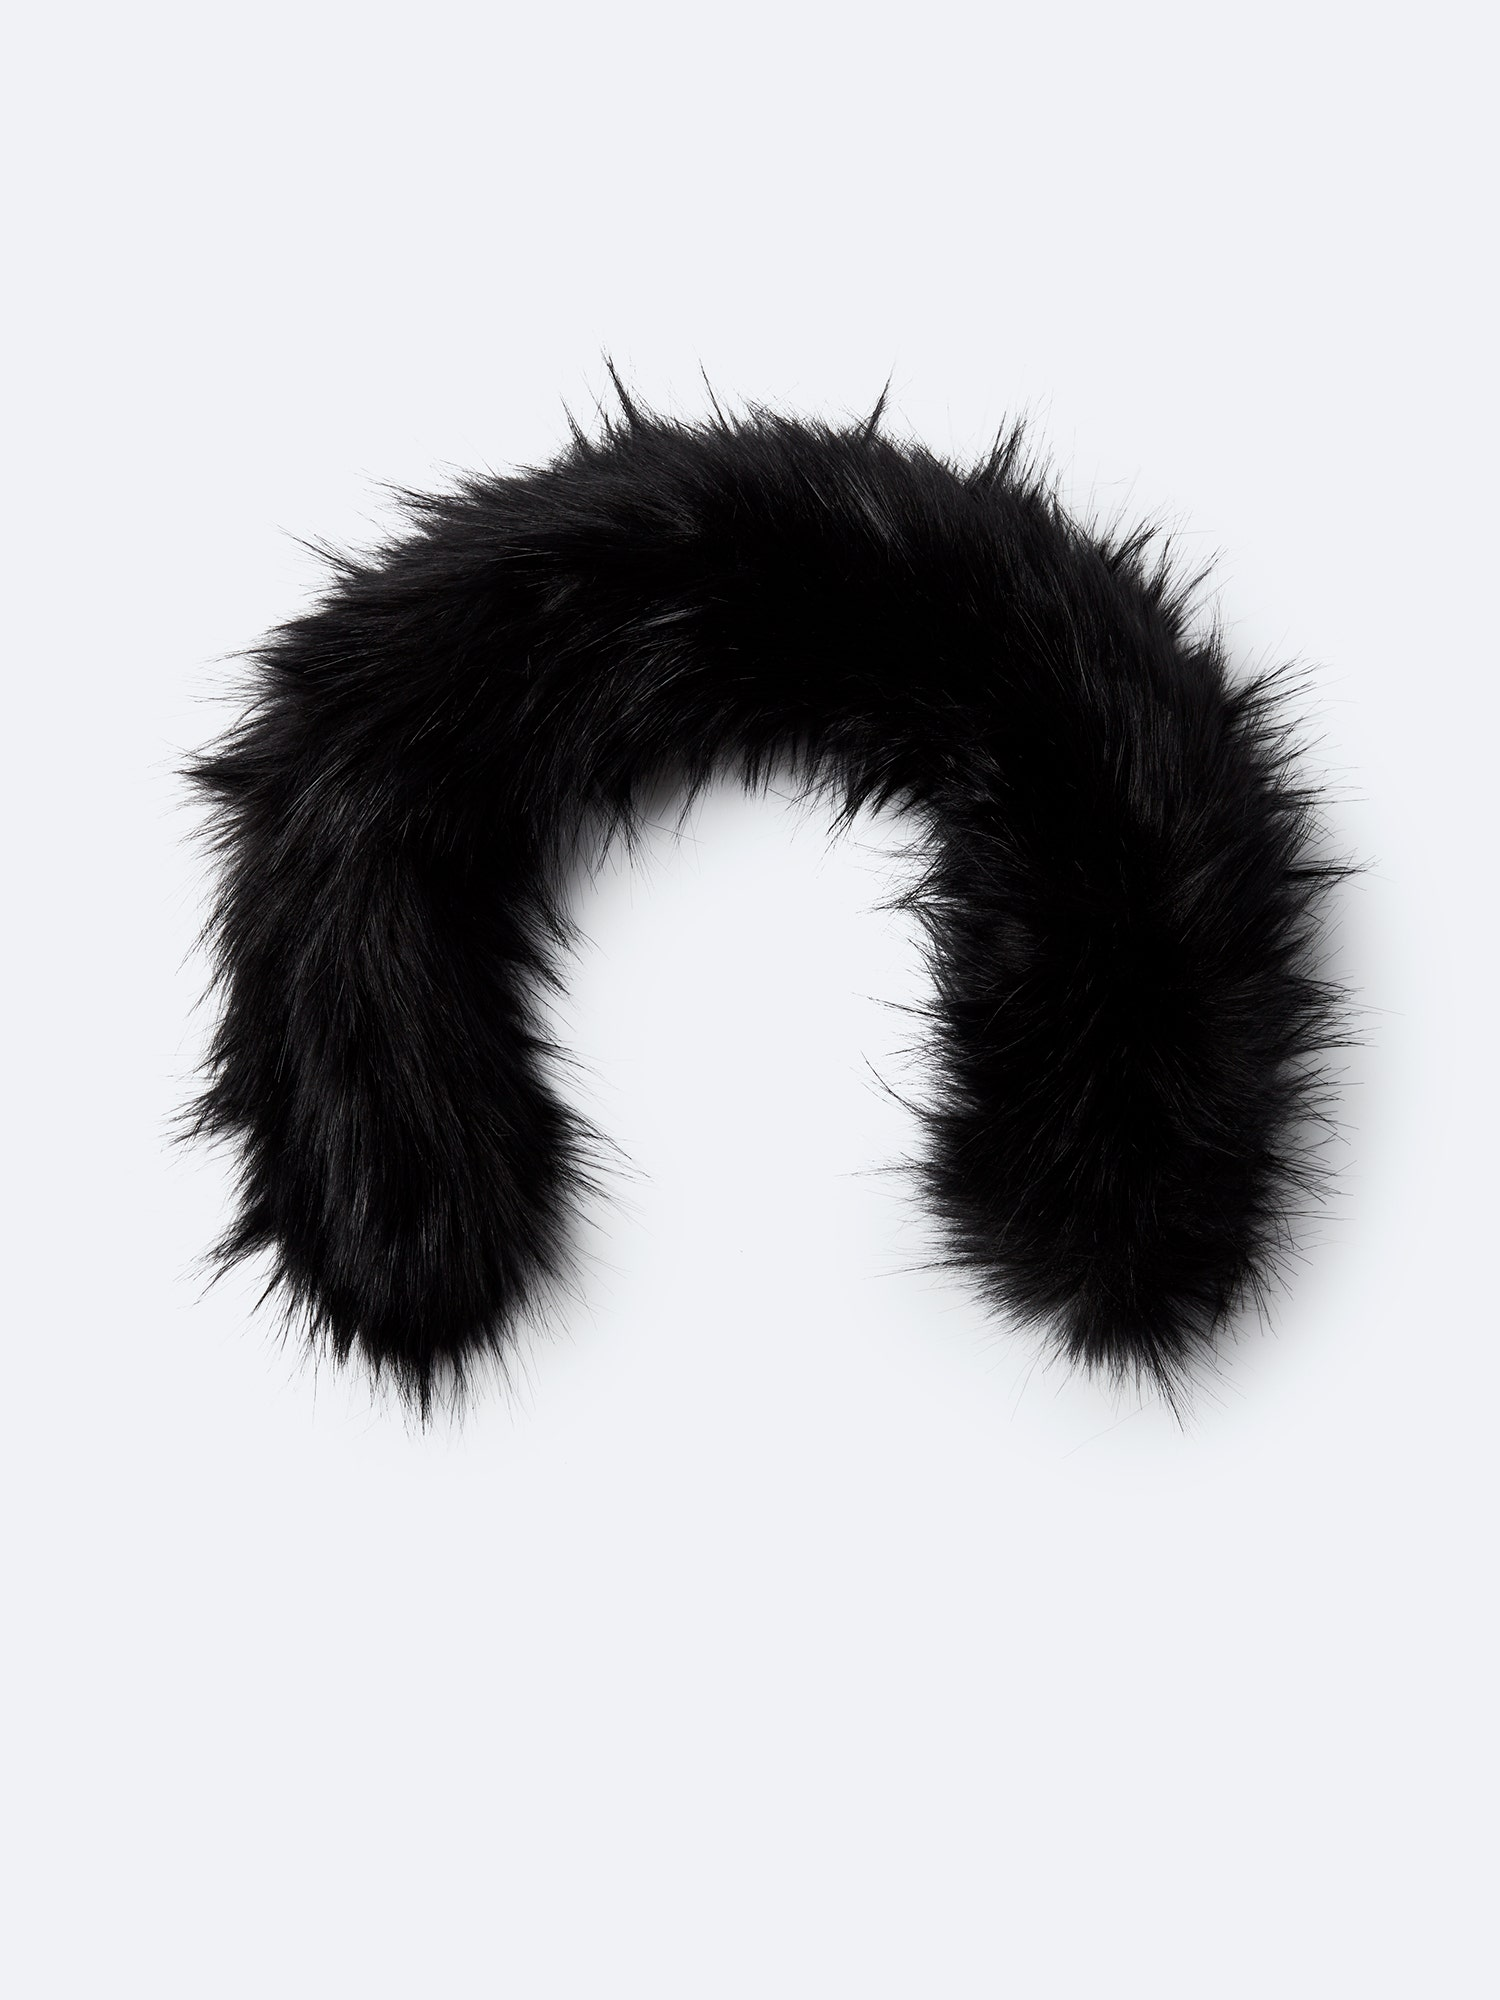 Synthetic fur black 23 inches